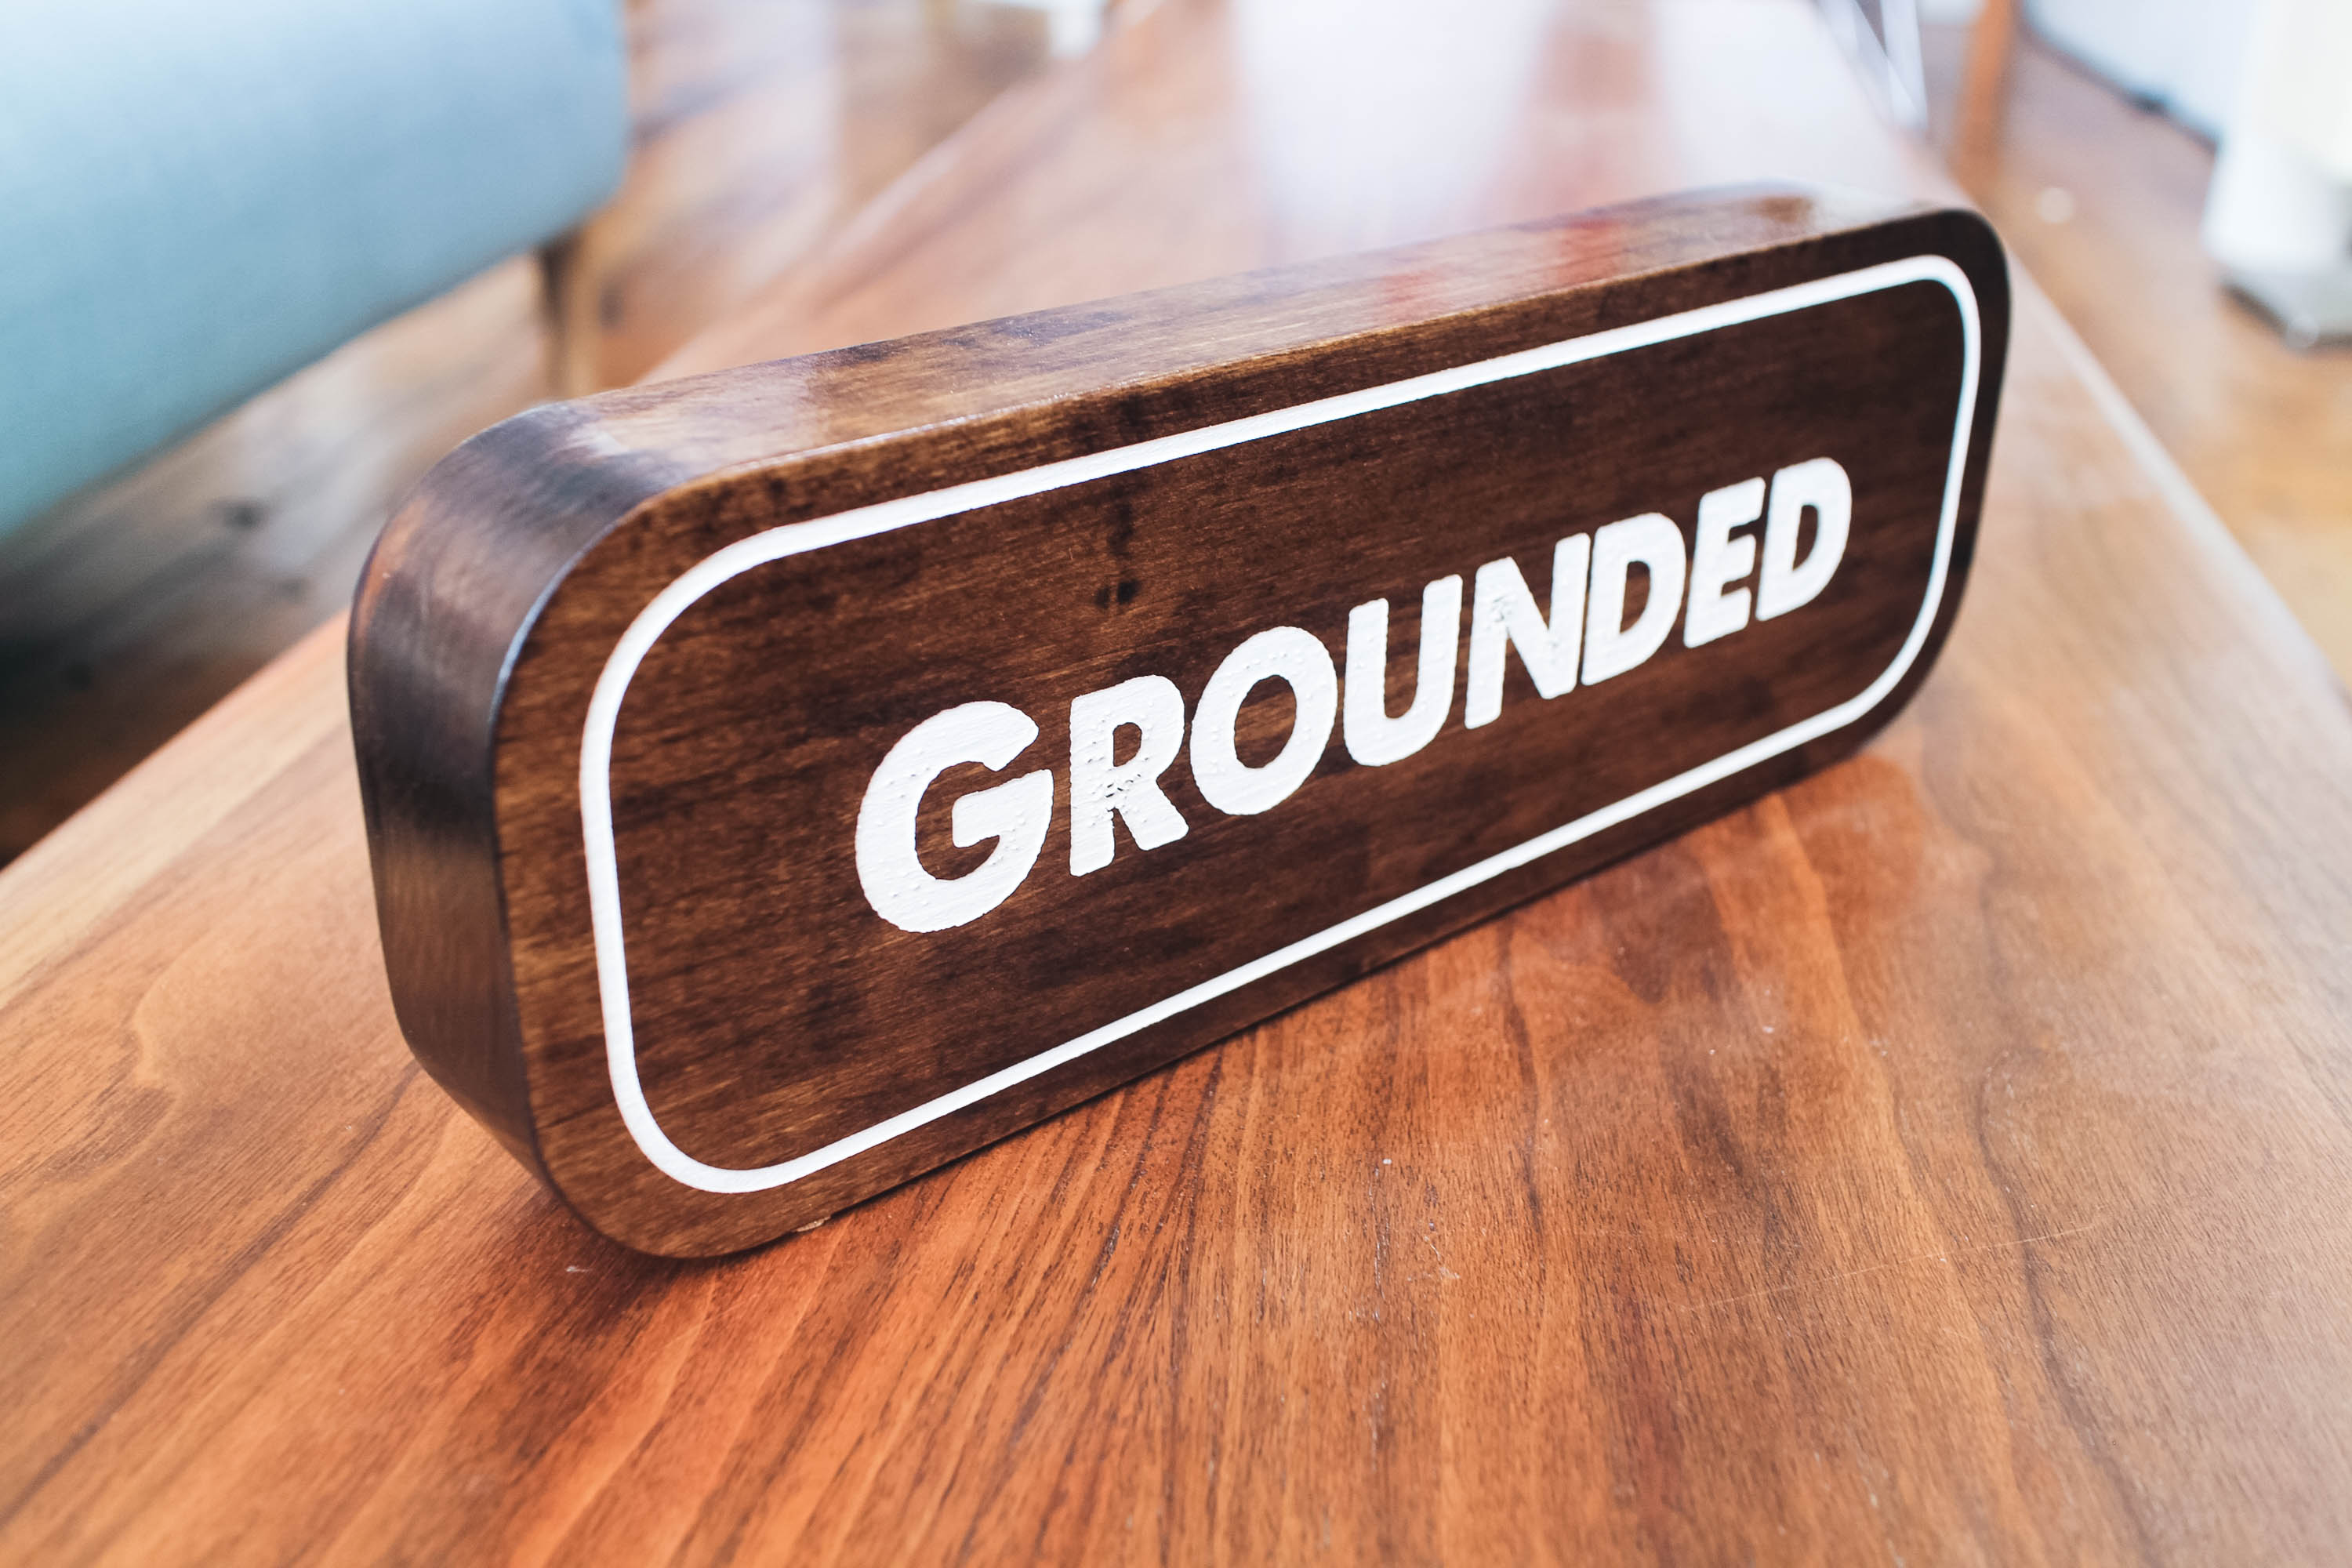 Grounded tabletop walnut wood sign